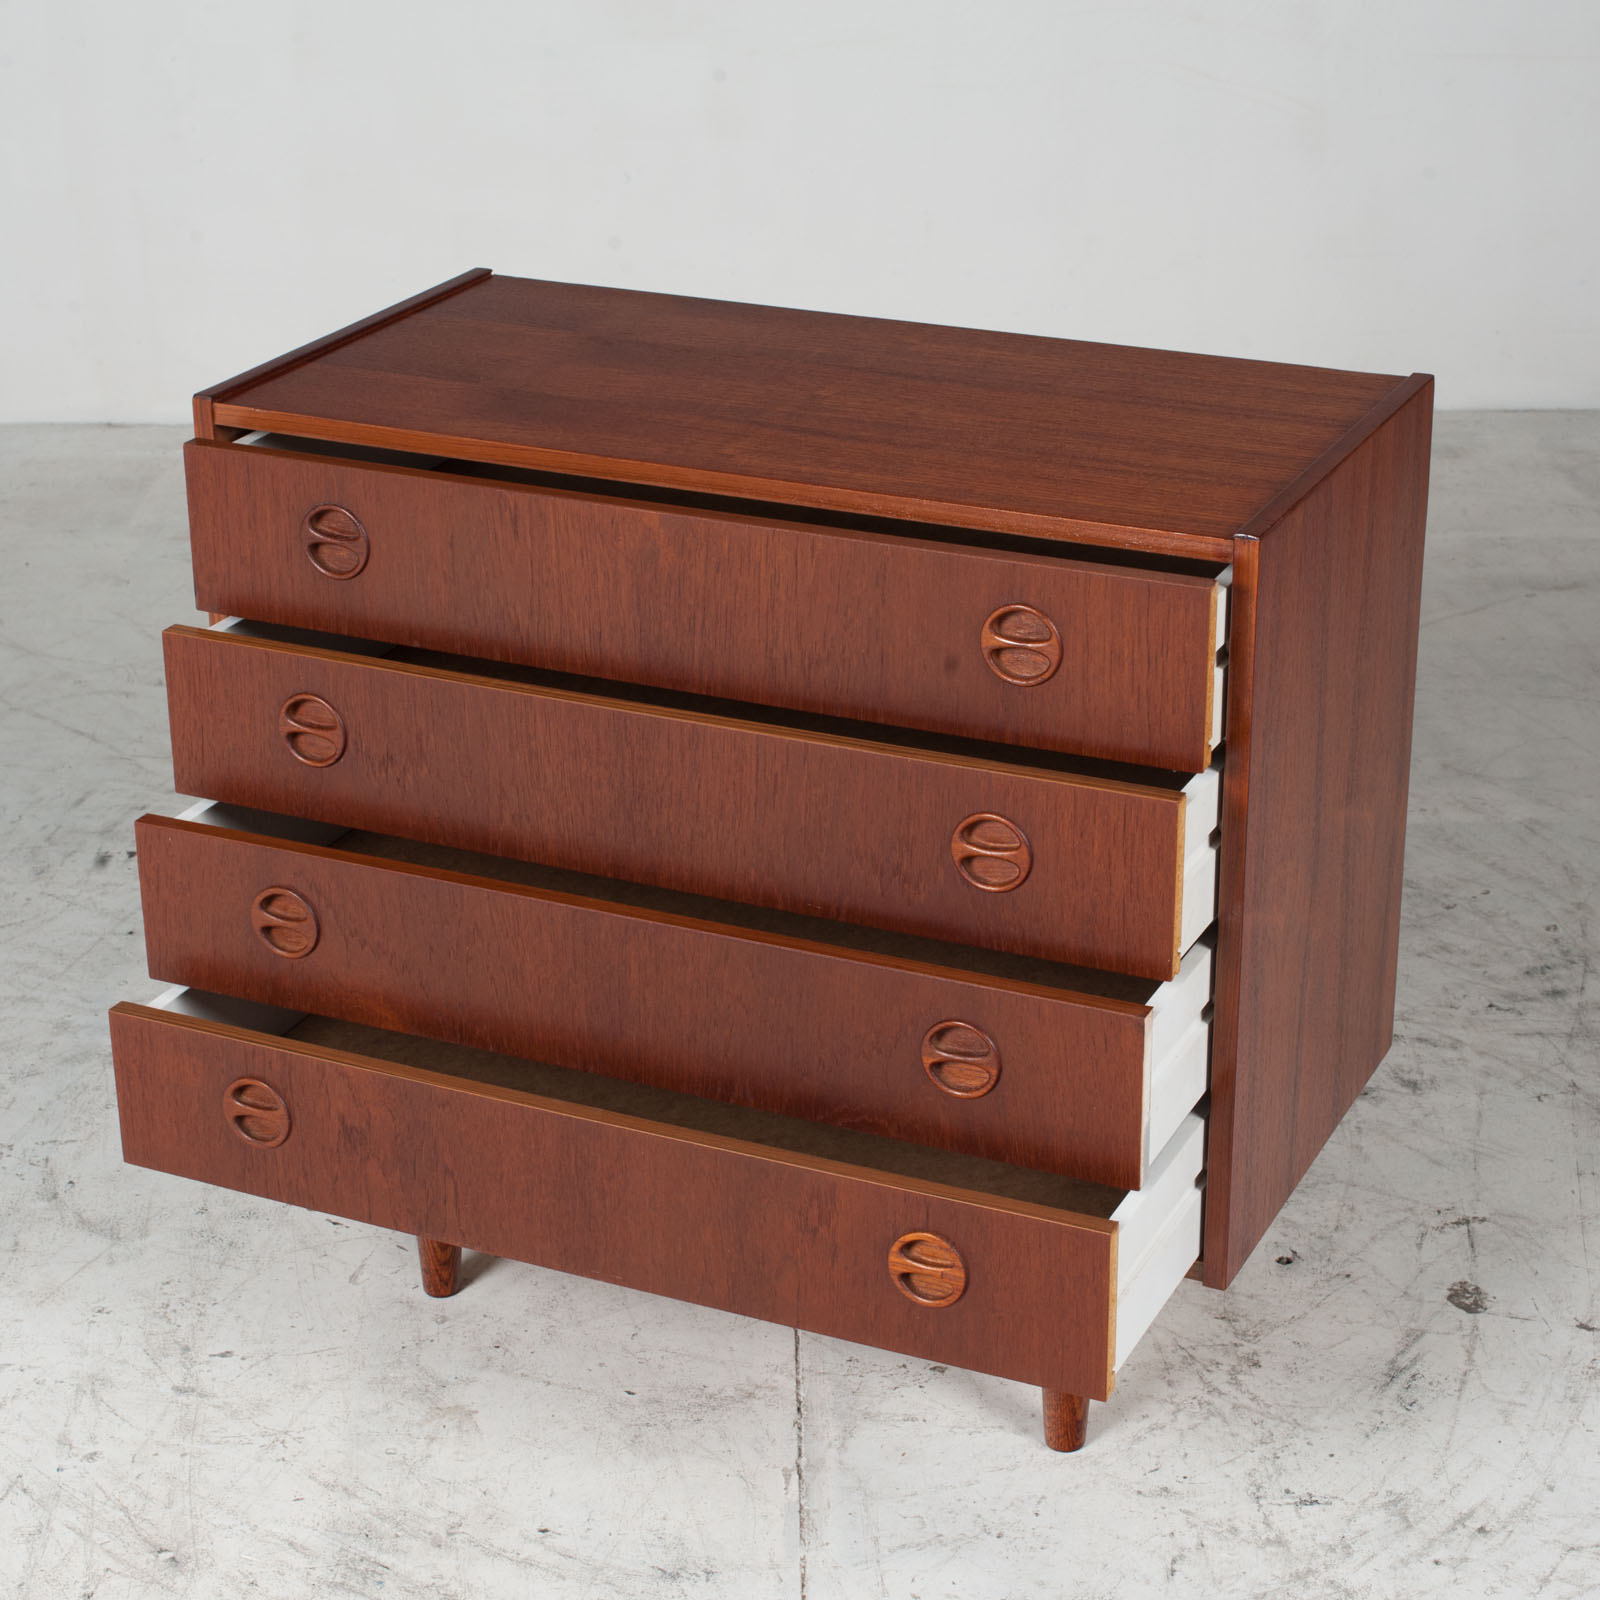 Chest Of Drawers In Teak, 1960s, Denmark 5